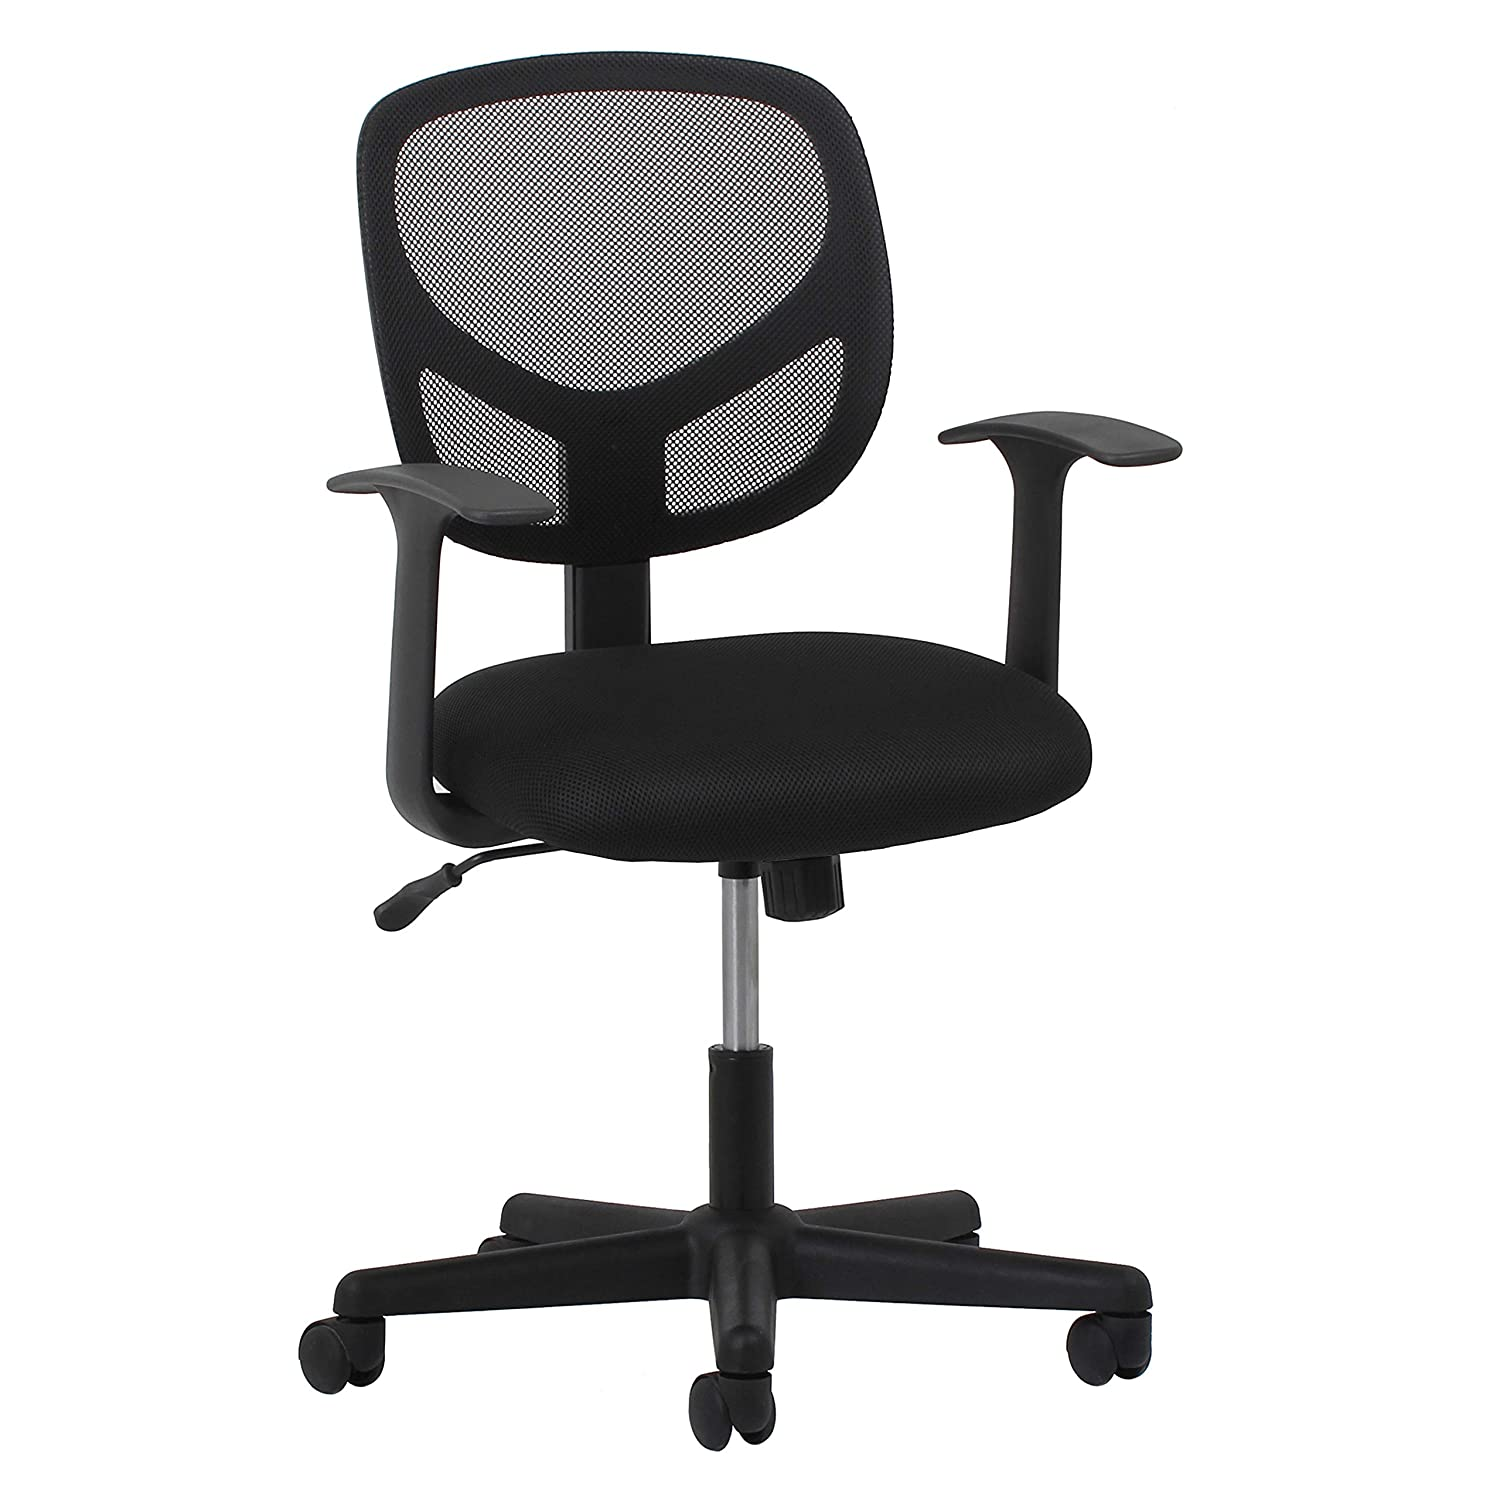 OFM Essentials Collection Mesh Back Office Chair, in Black